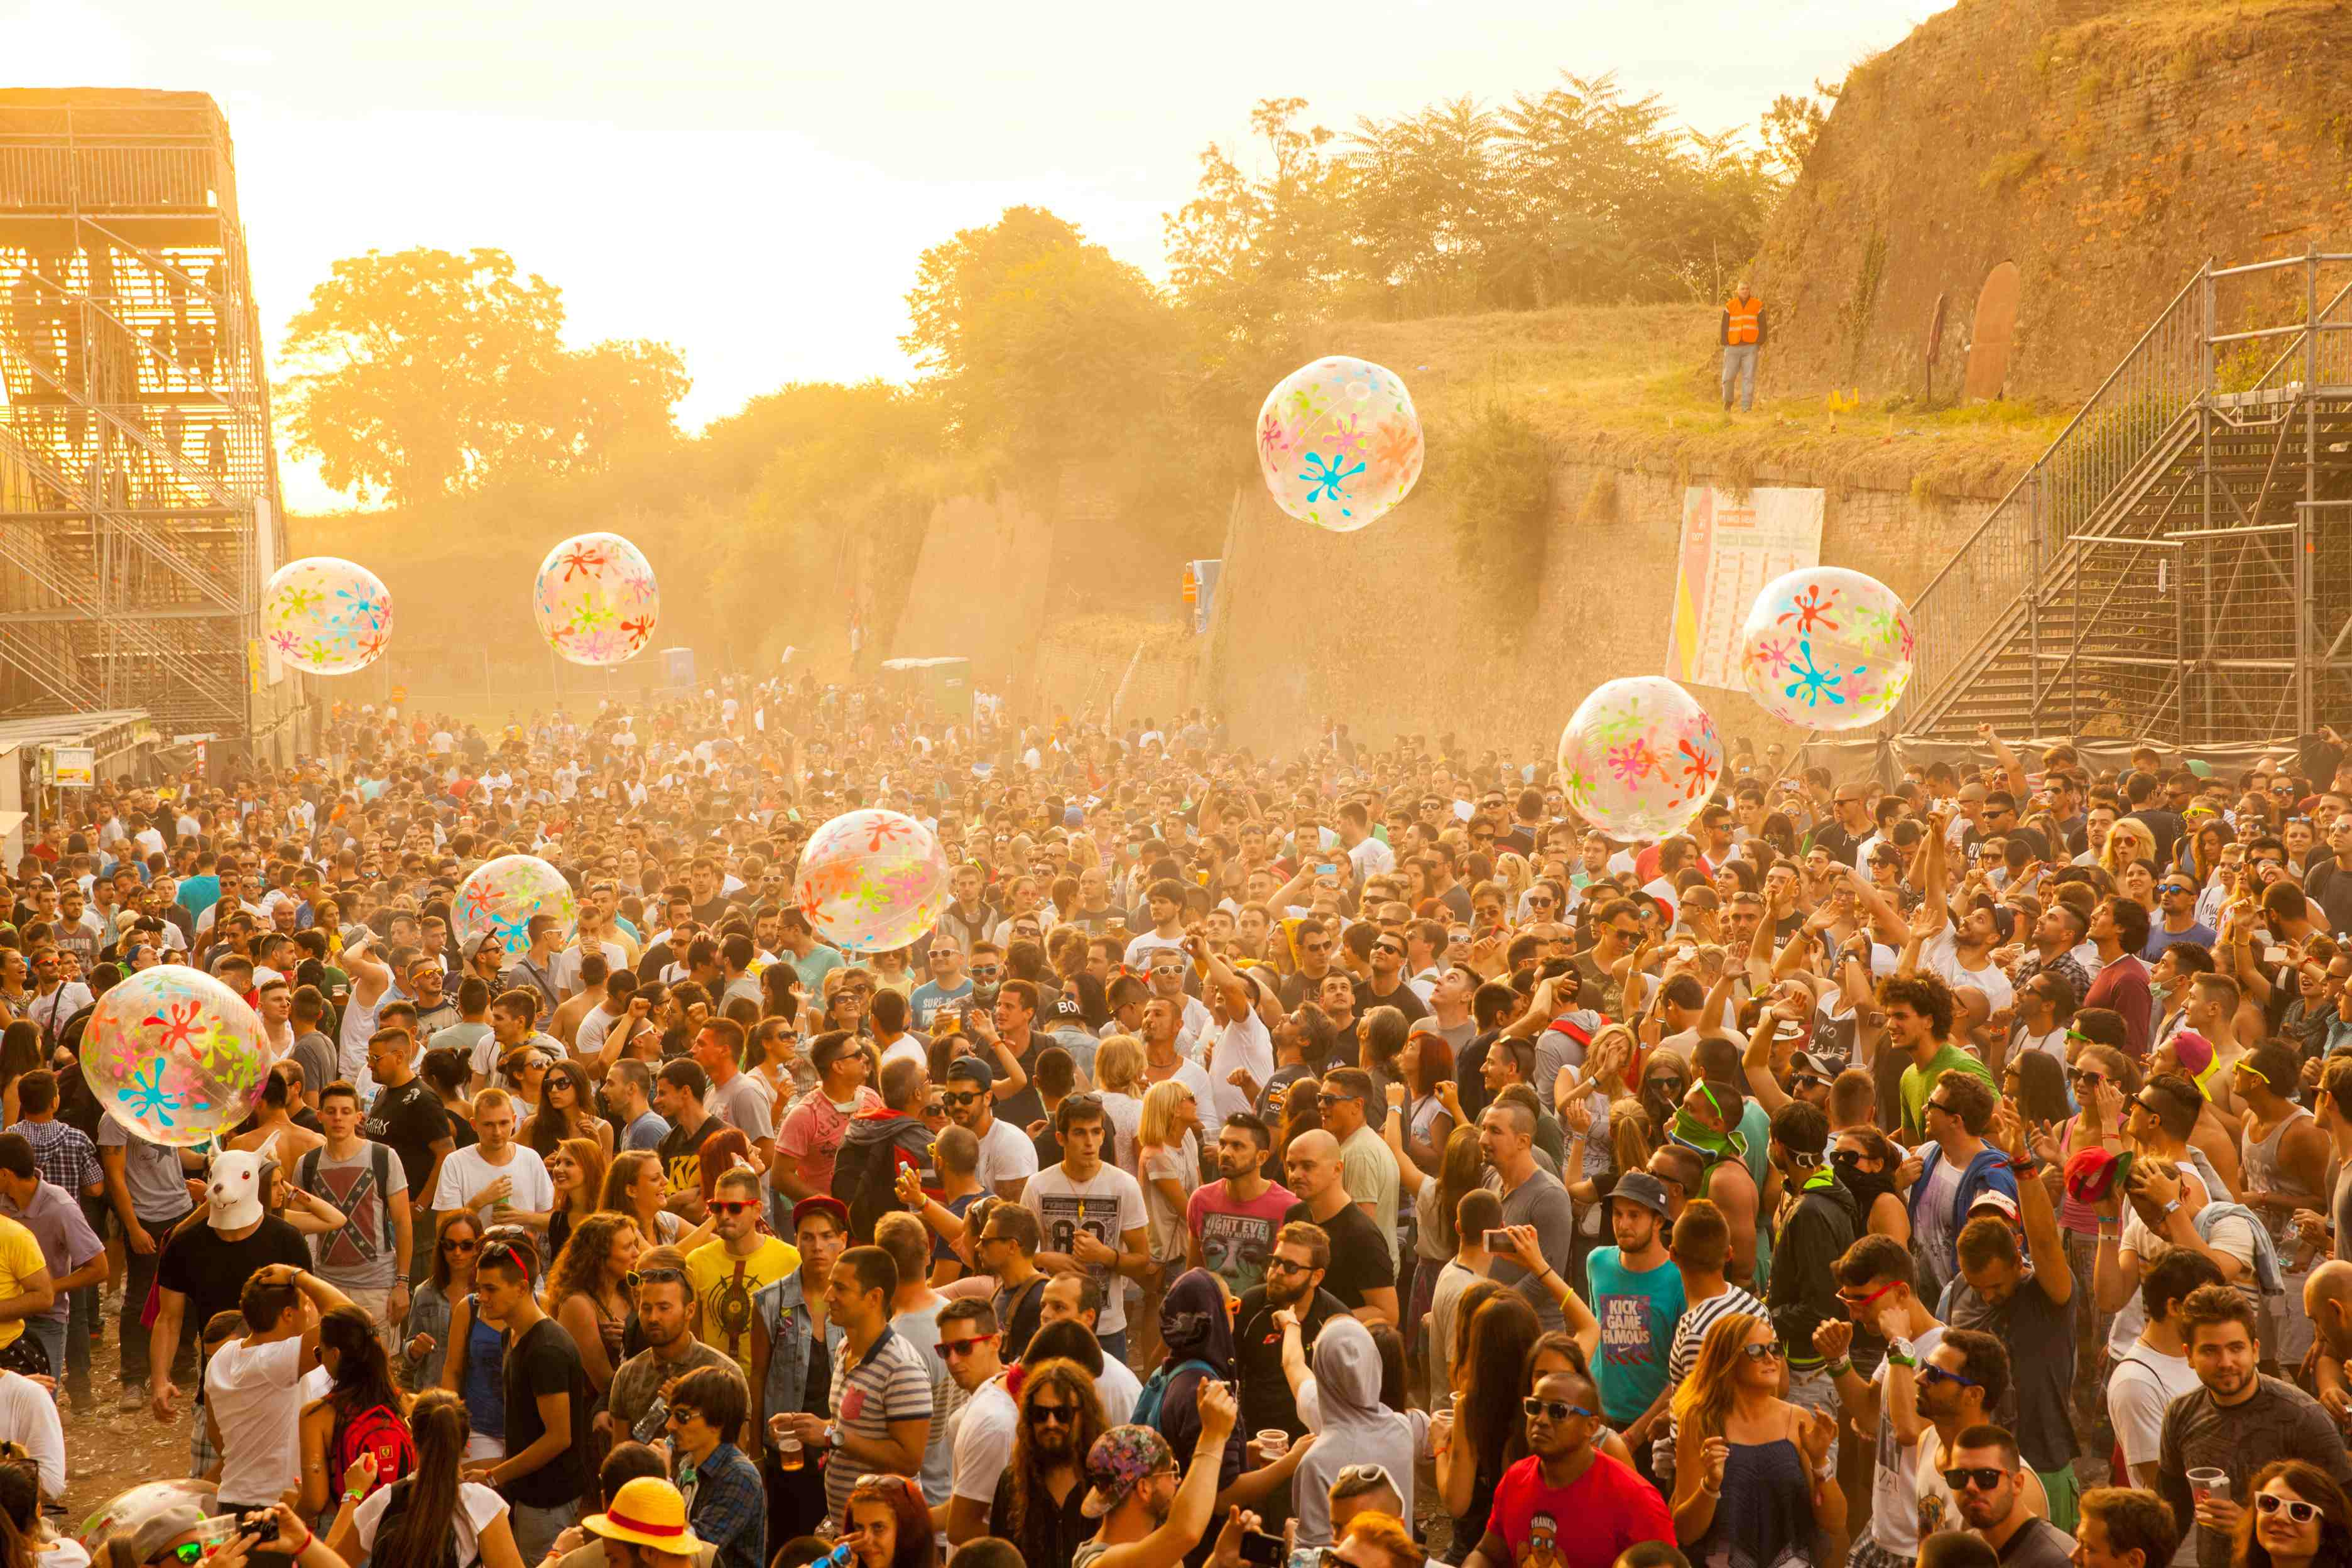 People enjoy the EXIT Festival in Novi Sad travelling to Serbia